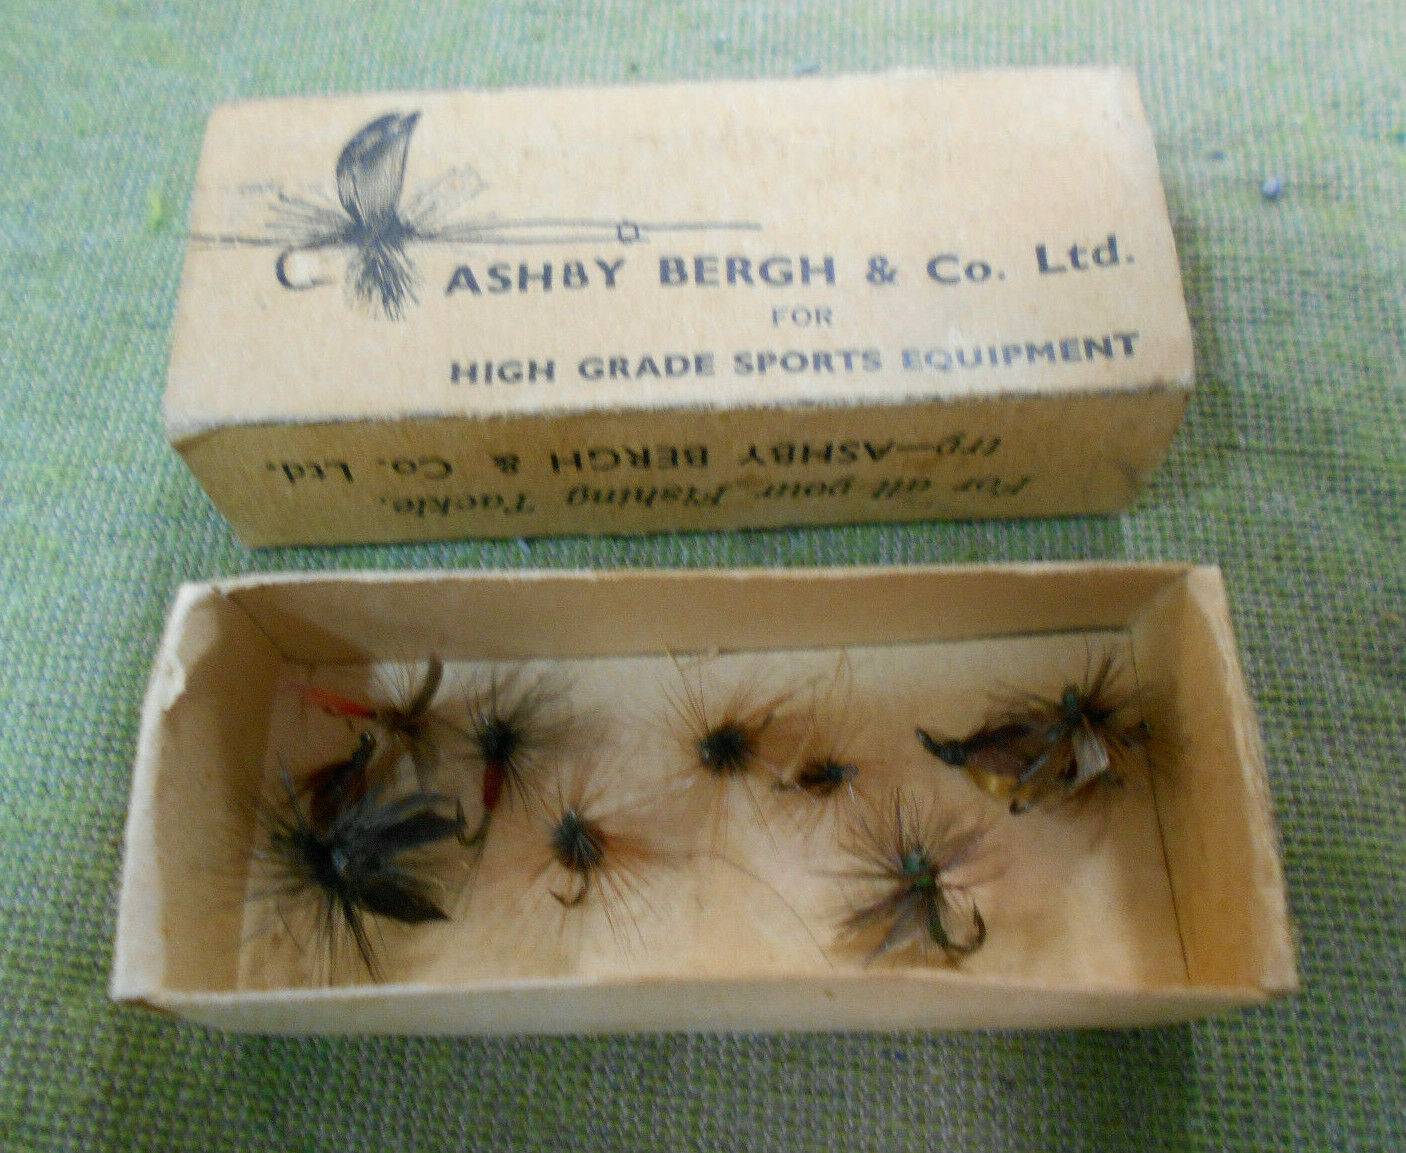 D462.   OLD ASHBY BERGH FISHING BOX  WITH  TEN10 DRY FLIES